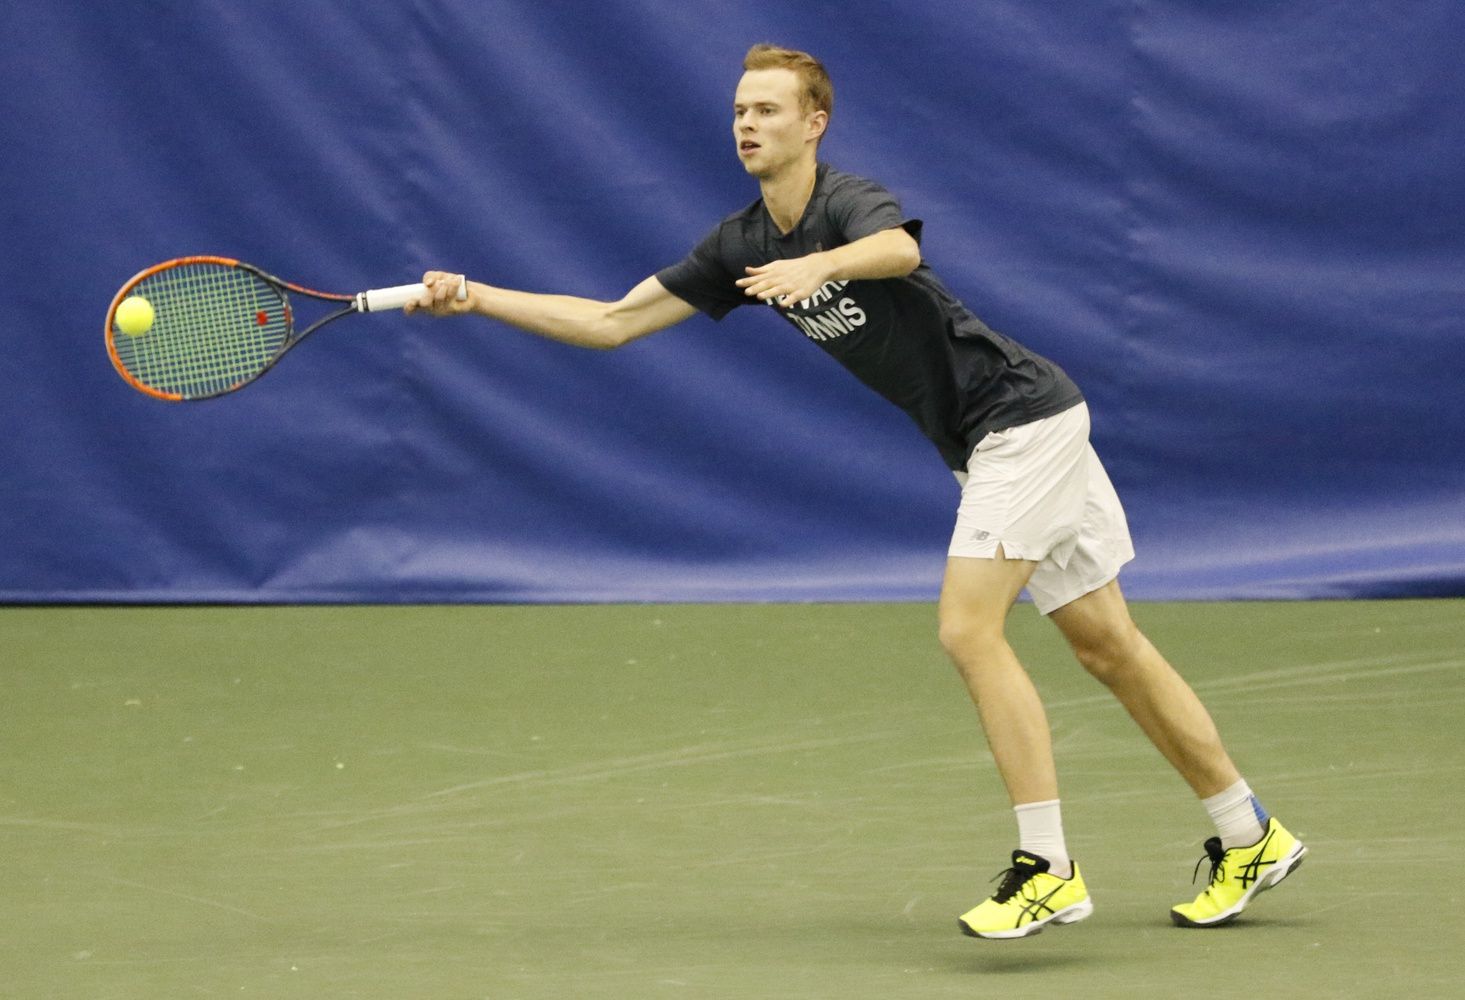 Sophomore Robert Wrzesinski hails from Vilnius, Lithuania and has competed in the Australian Open.